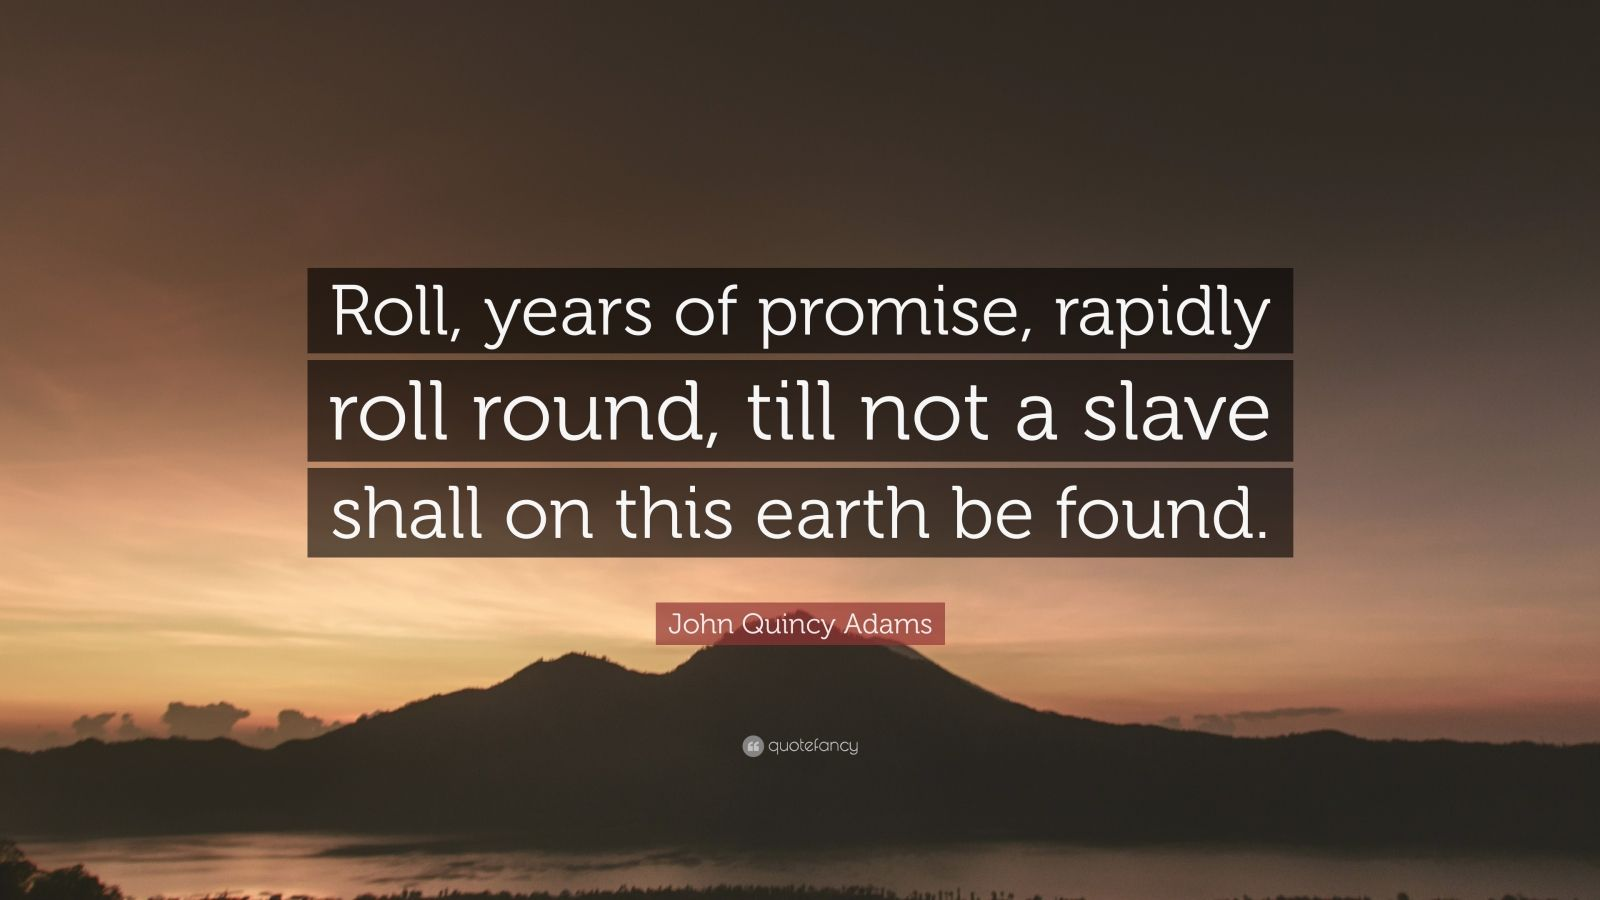 """John Quincy Adams Quote: """"Roll, years of promise, rapidly roll round, till not a slave shall on this earth be found."""""""